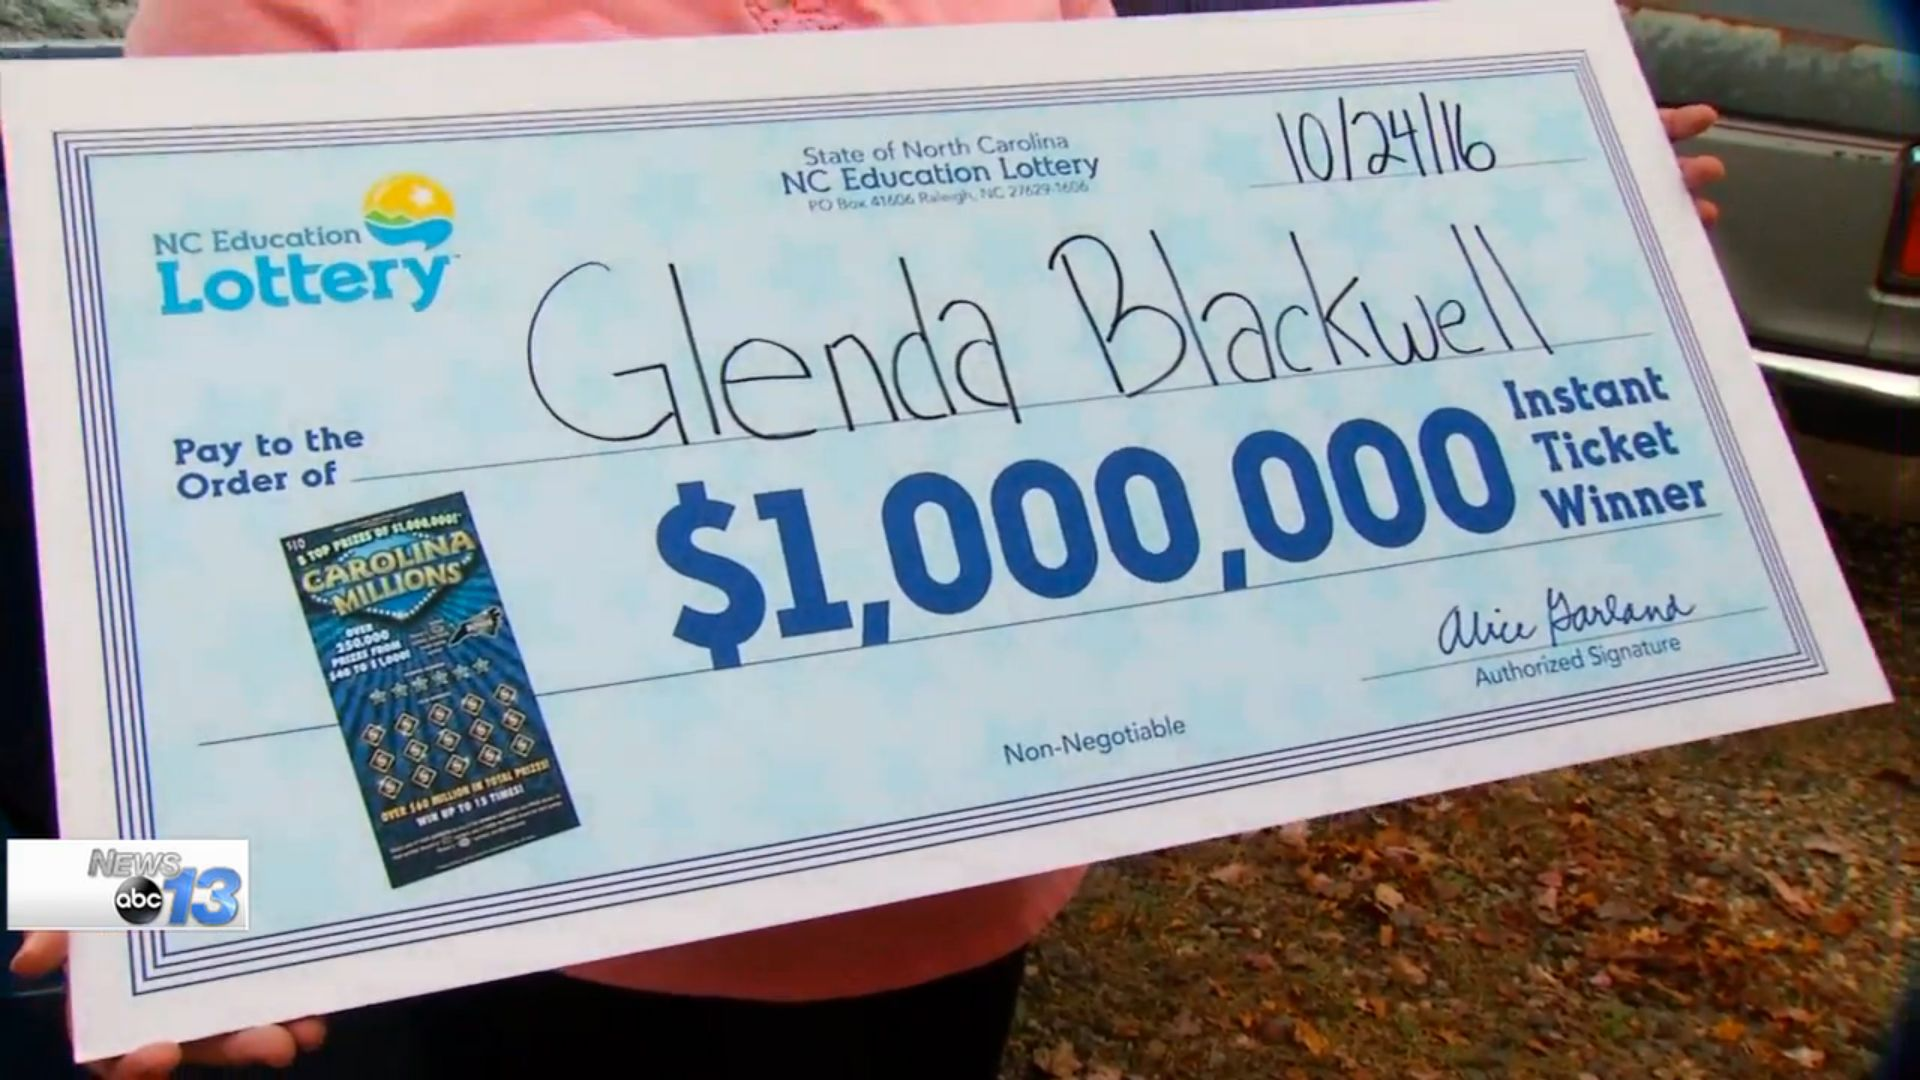 A North Carolina woman who was trying to prove that lottery tickets are a waste of money instead won 1000000